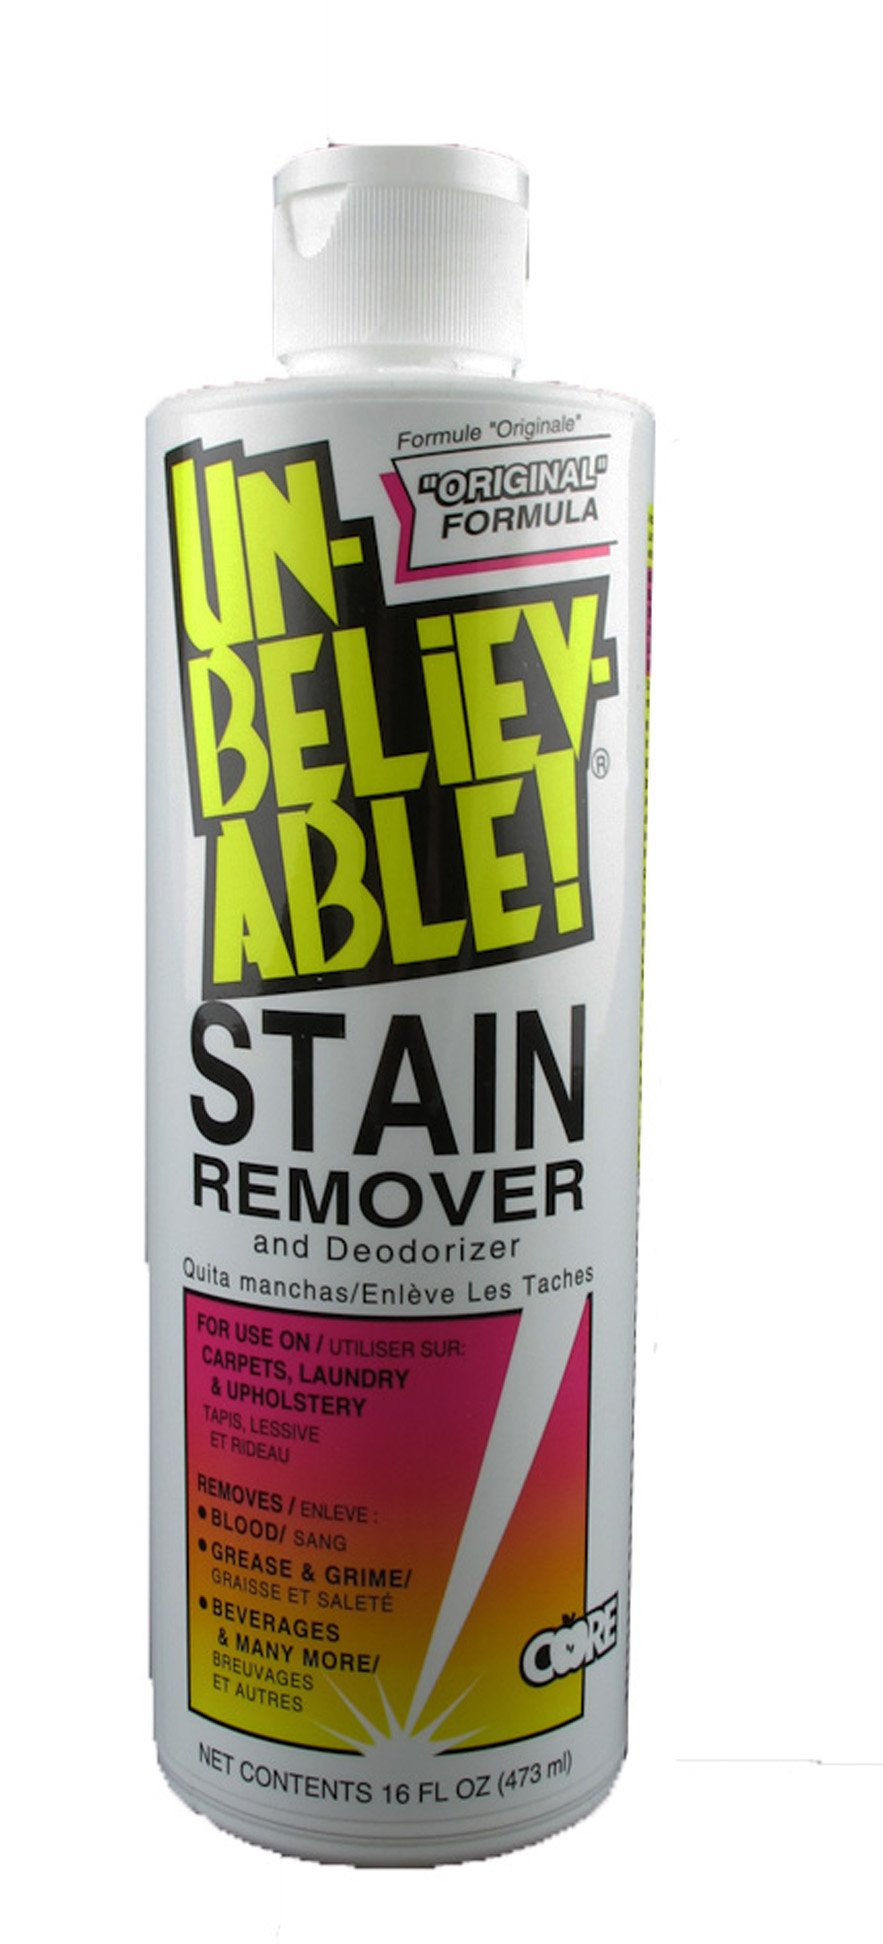 Unbelievable! SR-100 16 Oz. Stain Remover (Case of 12)